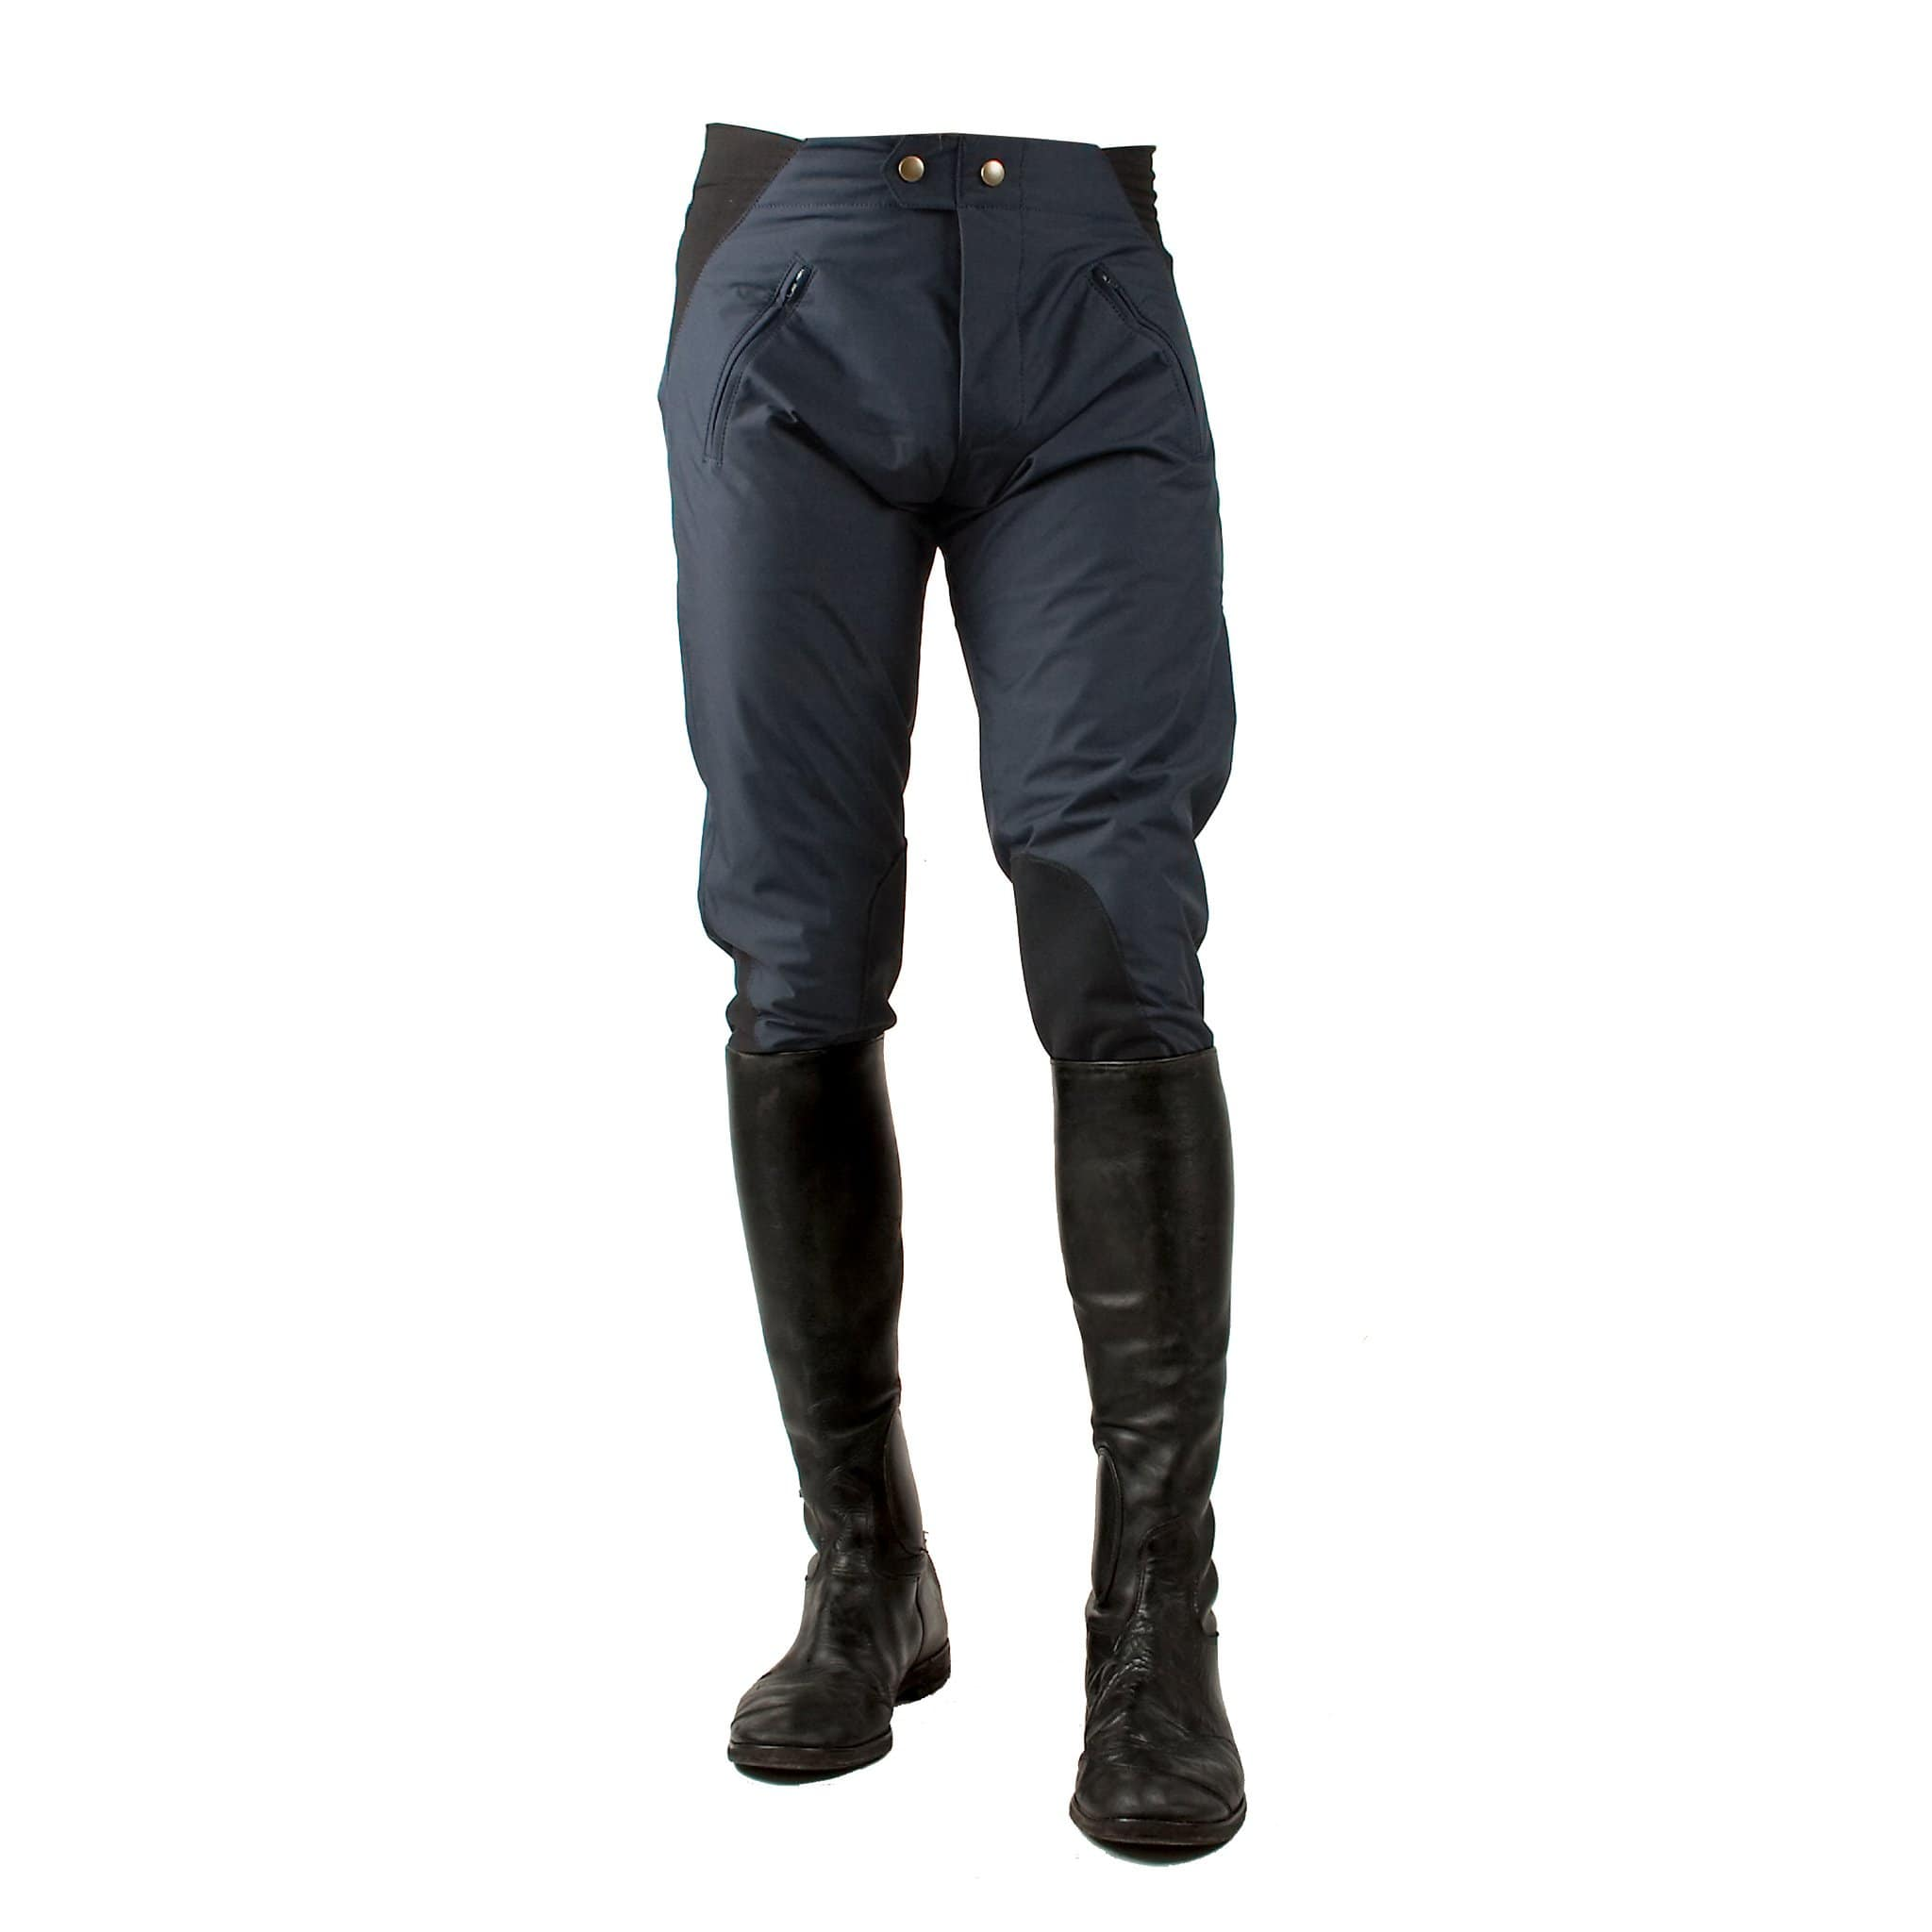 CLBHYW Horseware Showerproof Breeches Navy